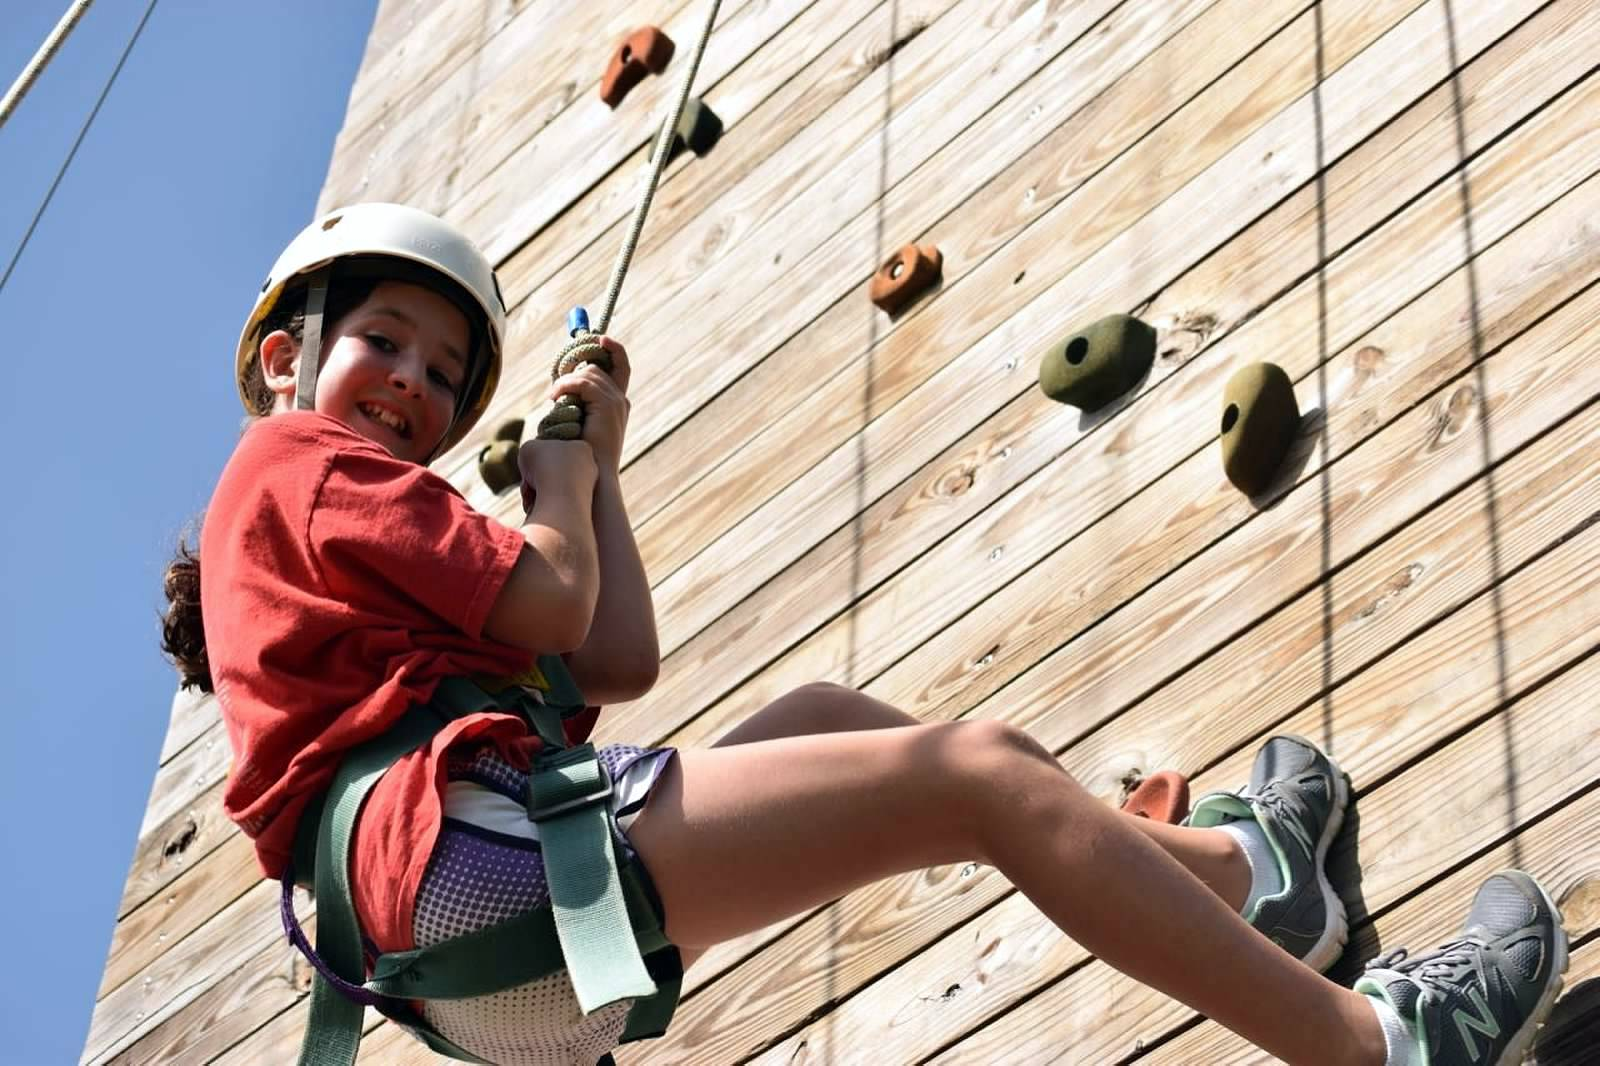 Kid climbing a rock wall